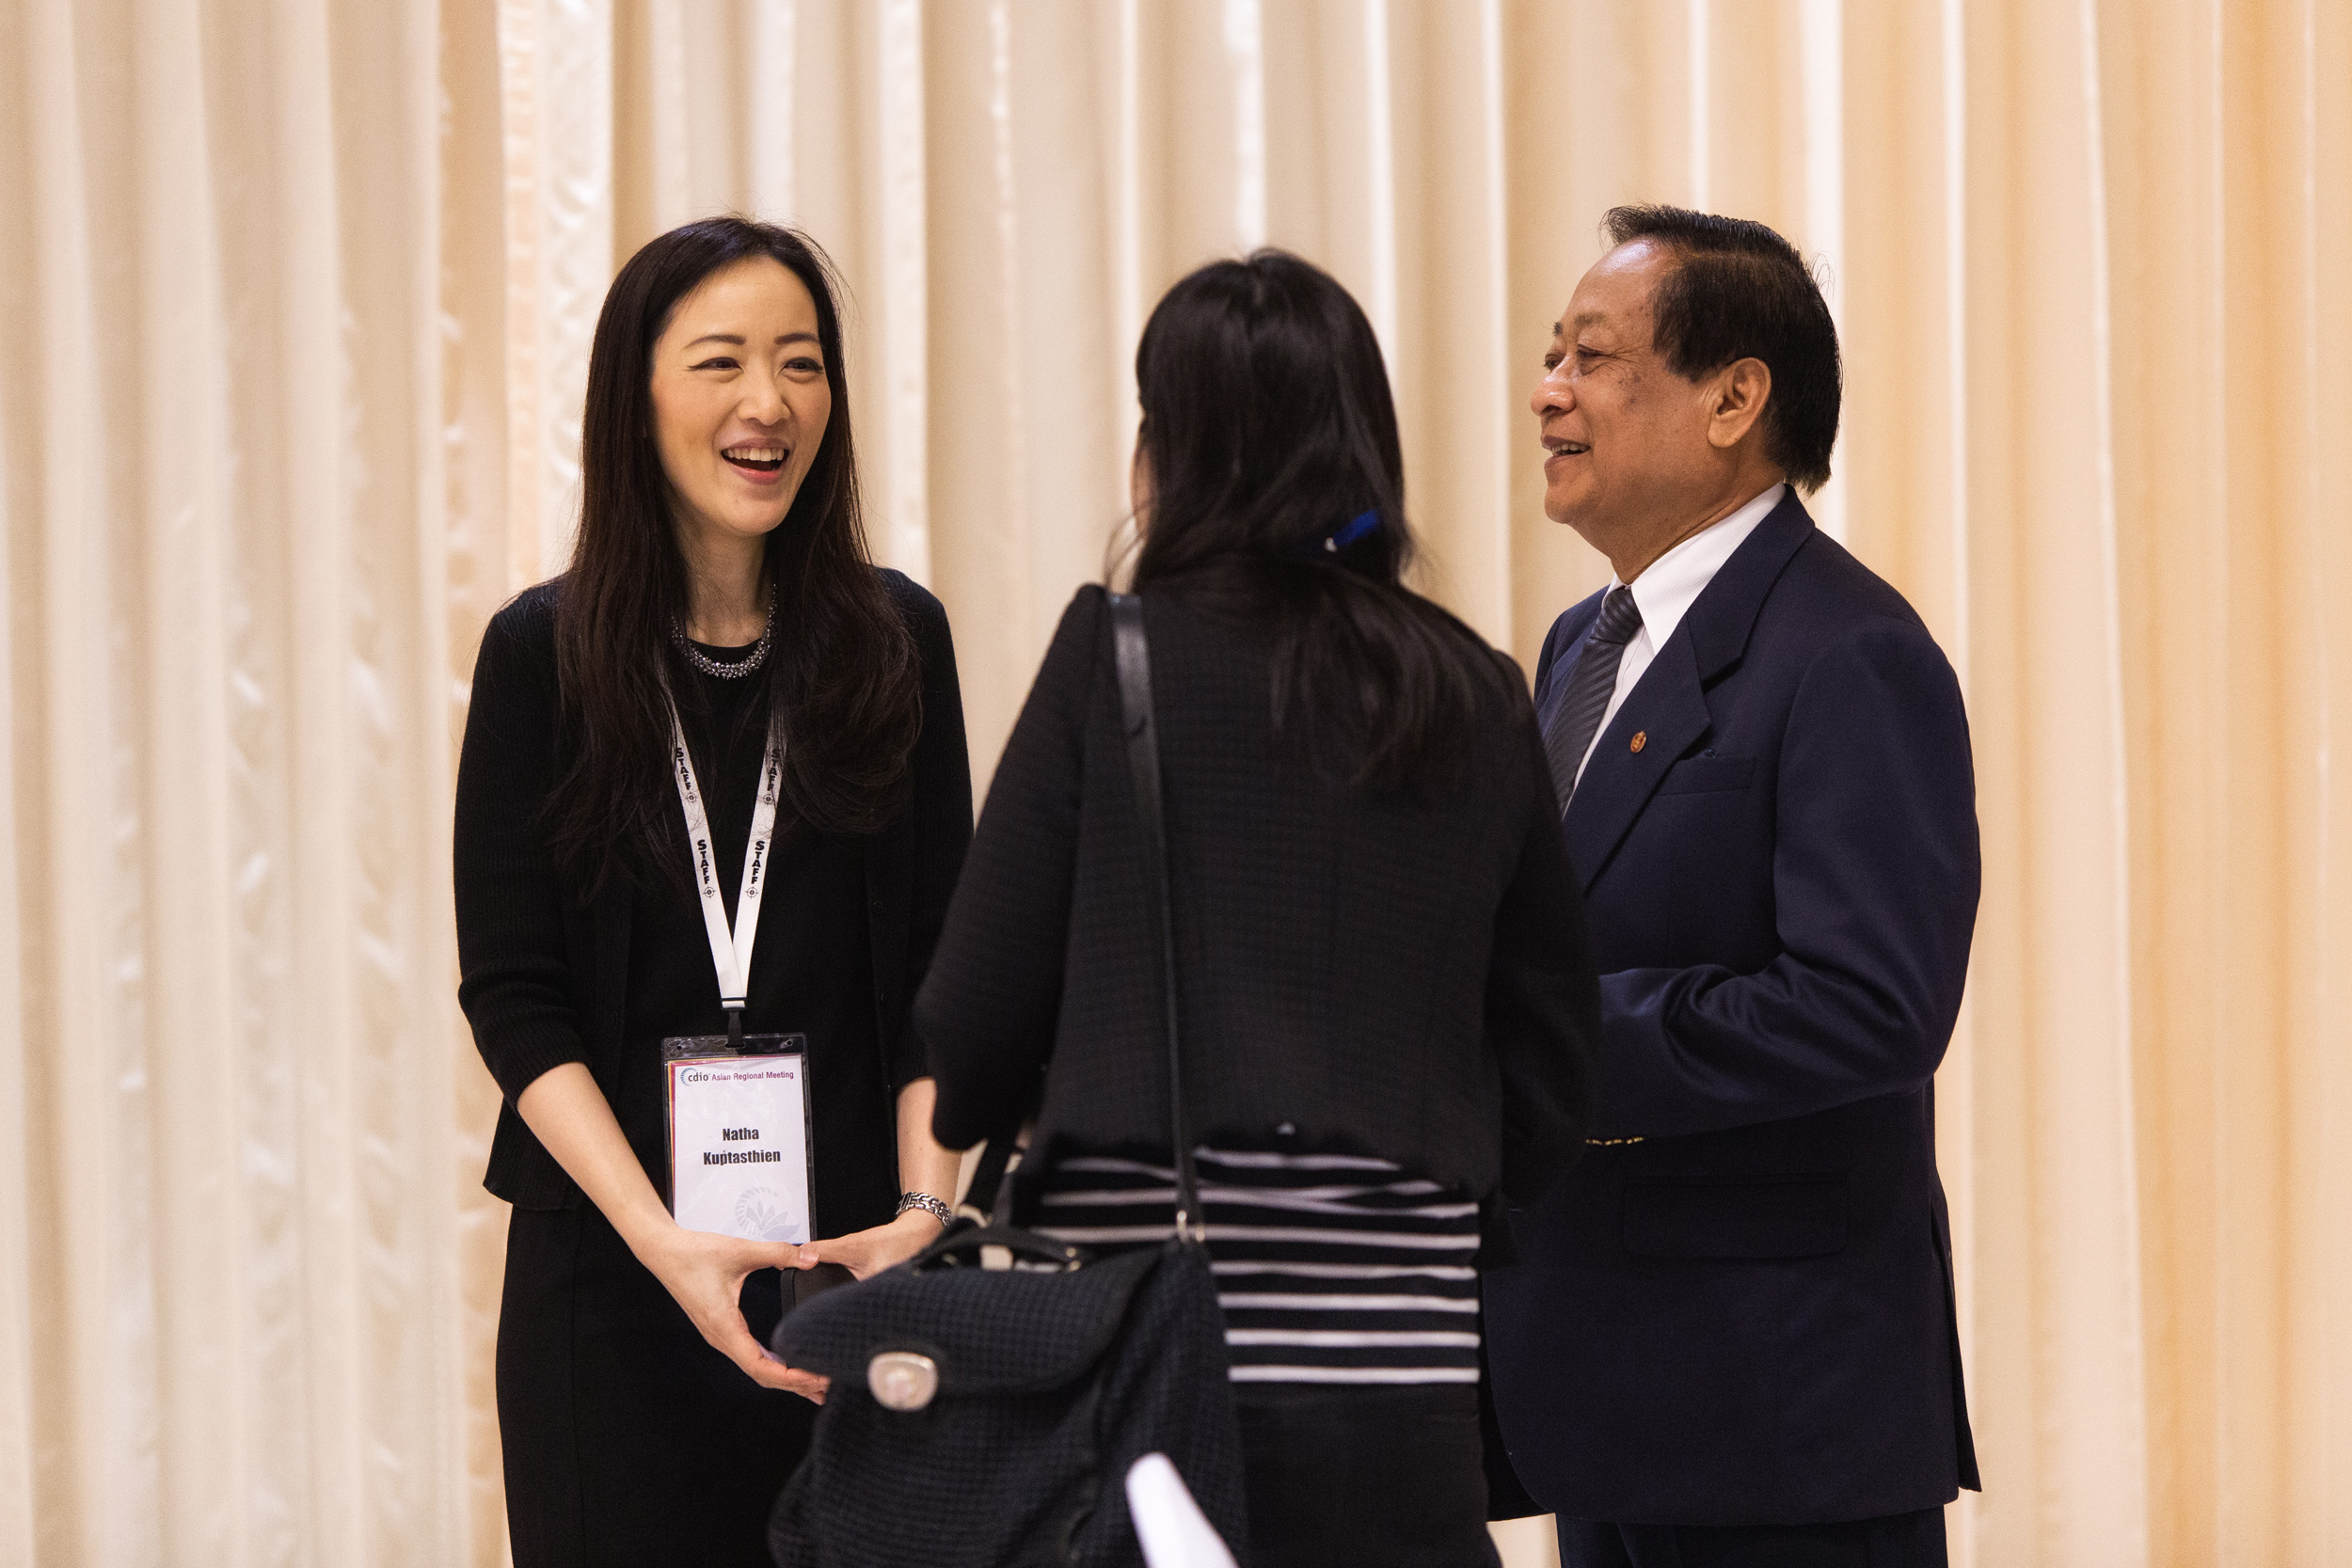 Natha Kuptasthien (left), who leads CDIO in RMUTT, interacts with participants at the 2017 CDIO Asian Regional Meeting. Temasek Foundation International, which supports CDIO in Thailand, is a supporter of the framework because of its focus on addressing real-world situations.